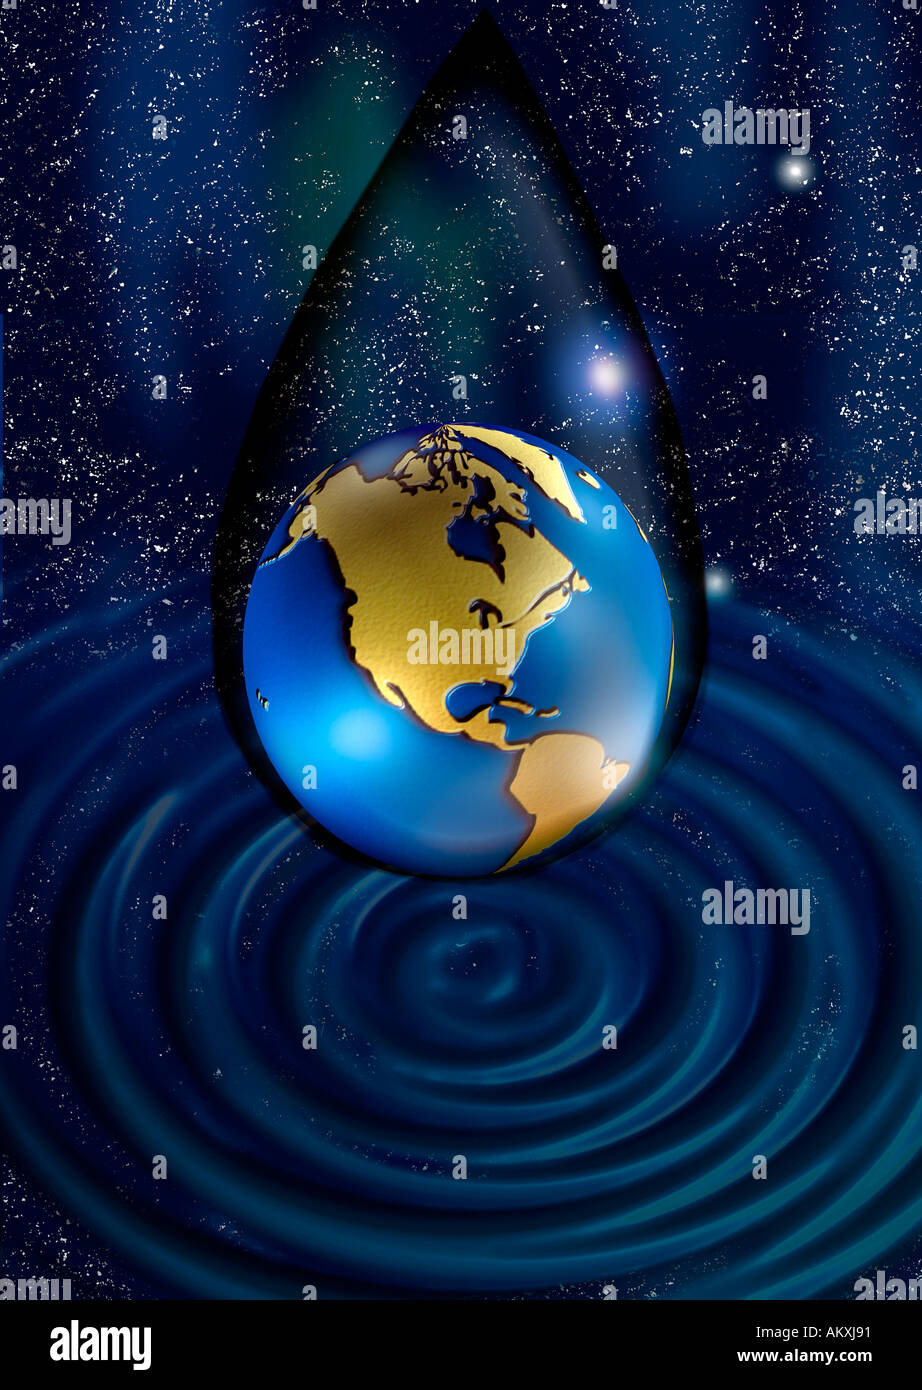 world earth globe planet with space cosmic background with stars earth in bubble tear with water ripple  beneath - Stock Image